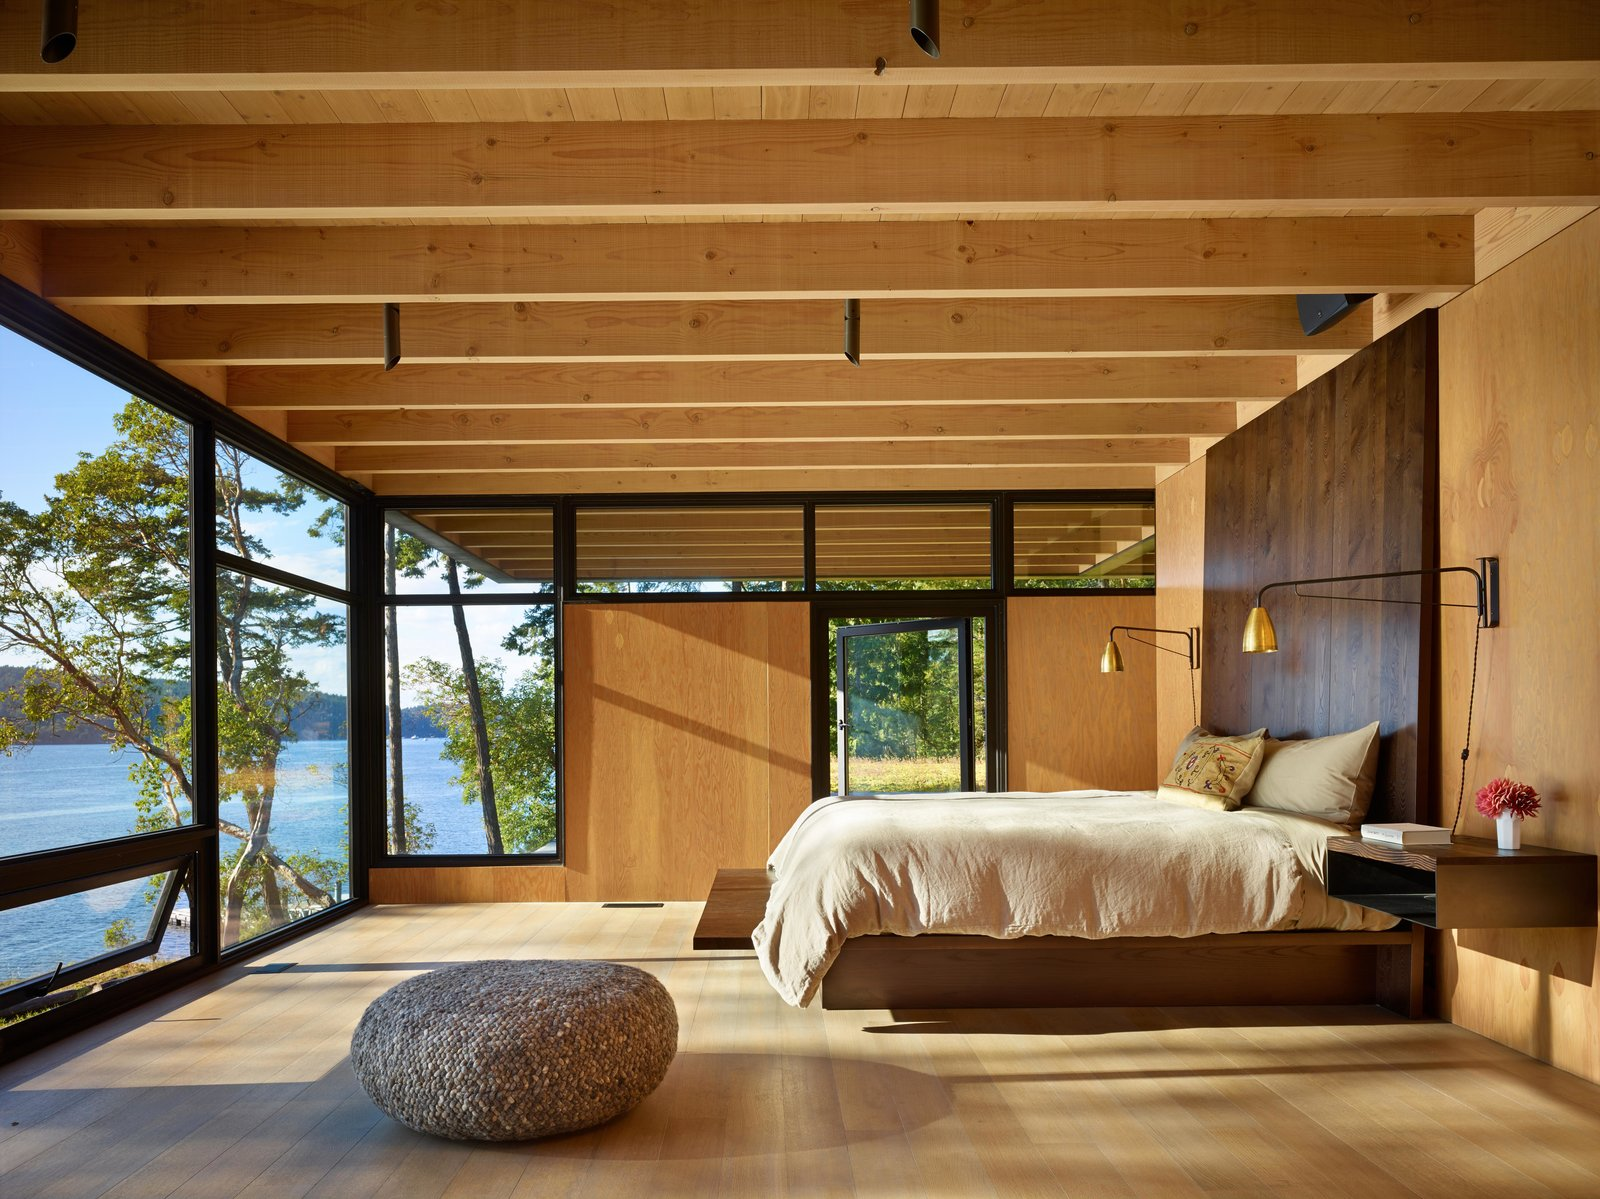 Top 5 Modern Bedrooms Of The Week Dwell